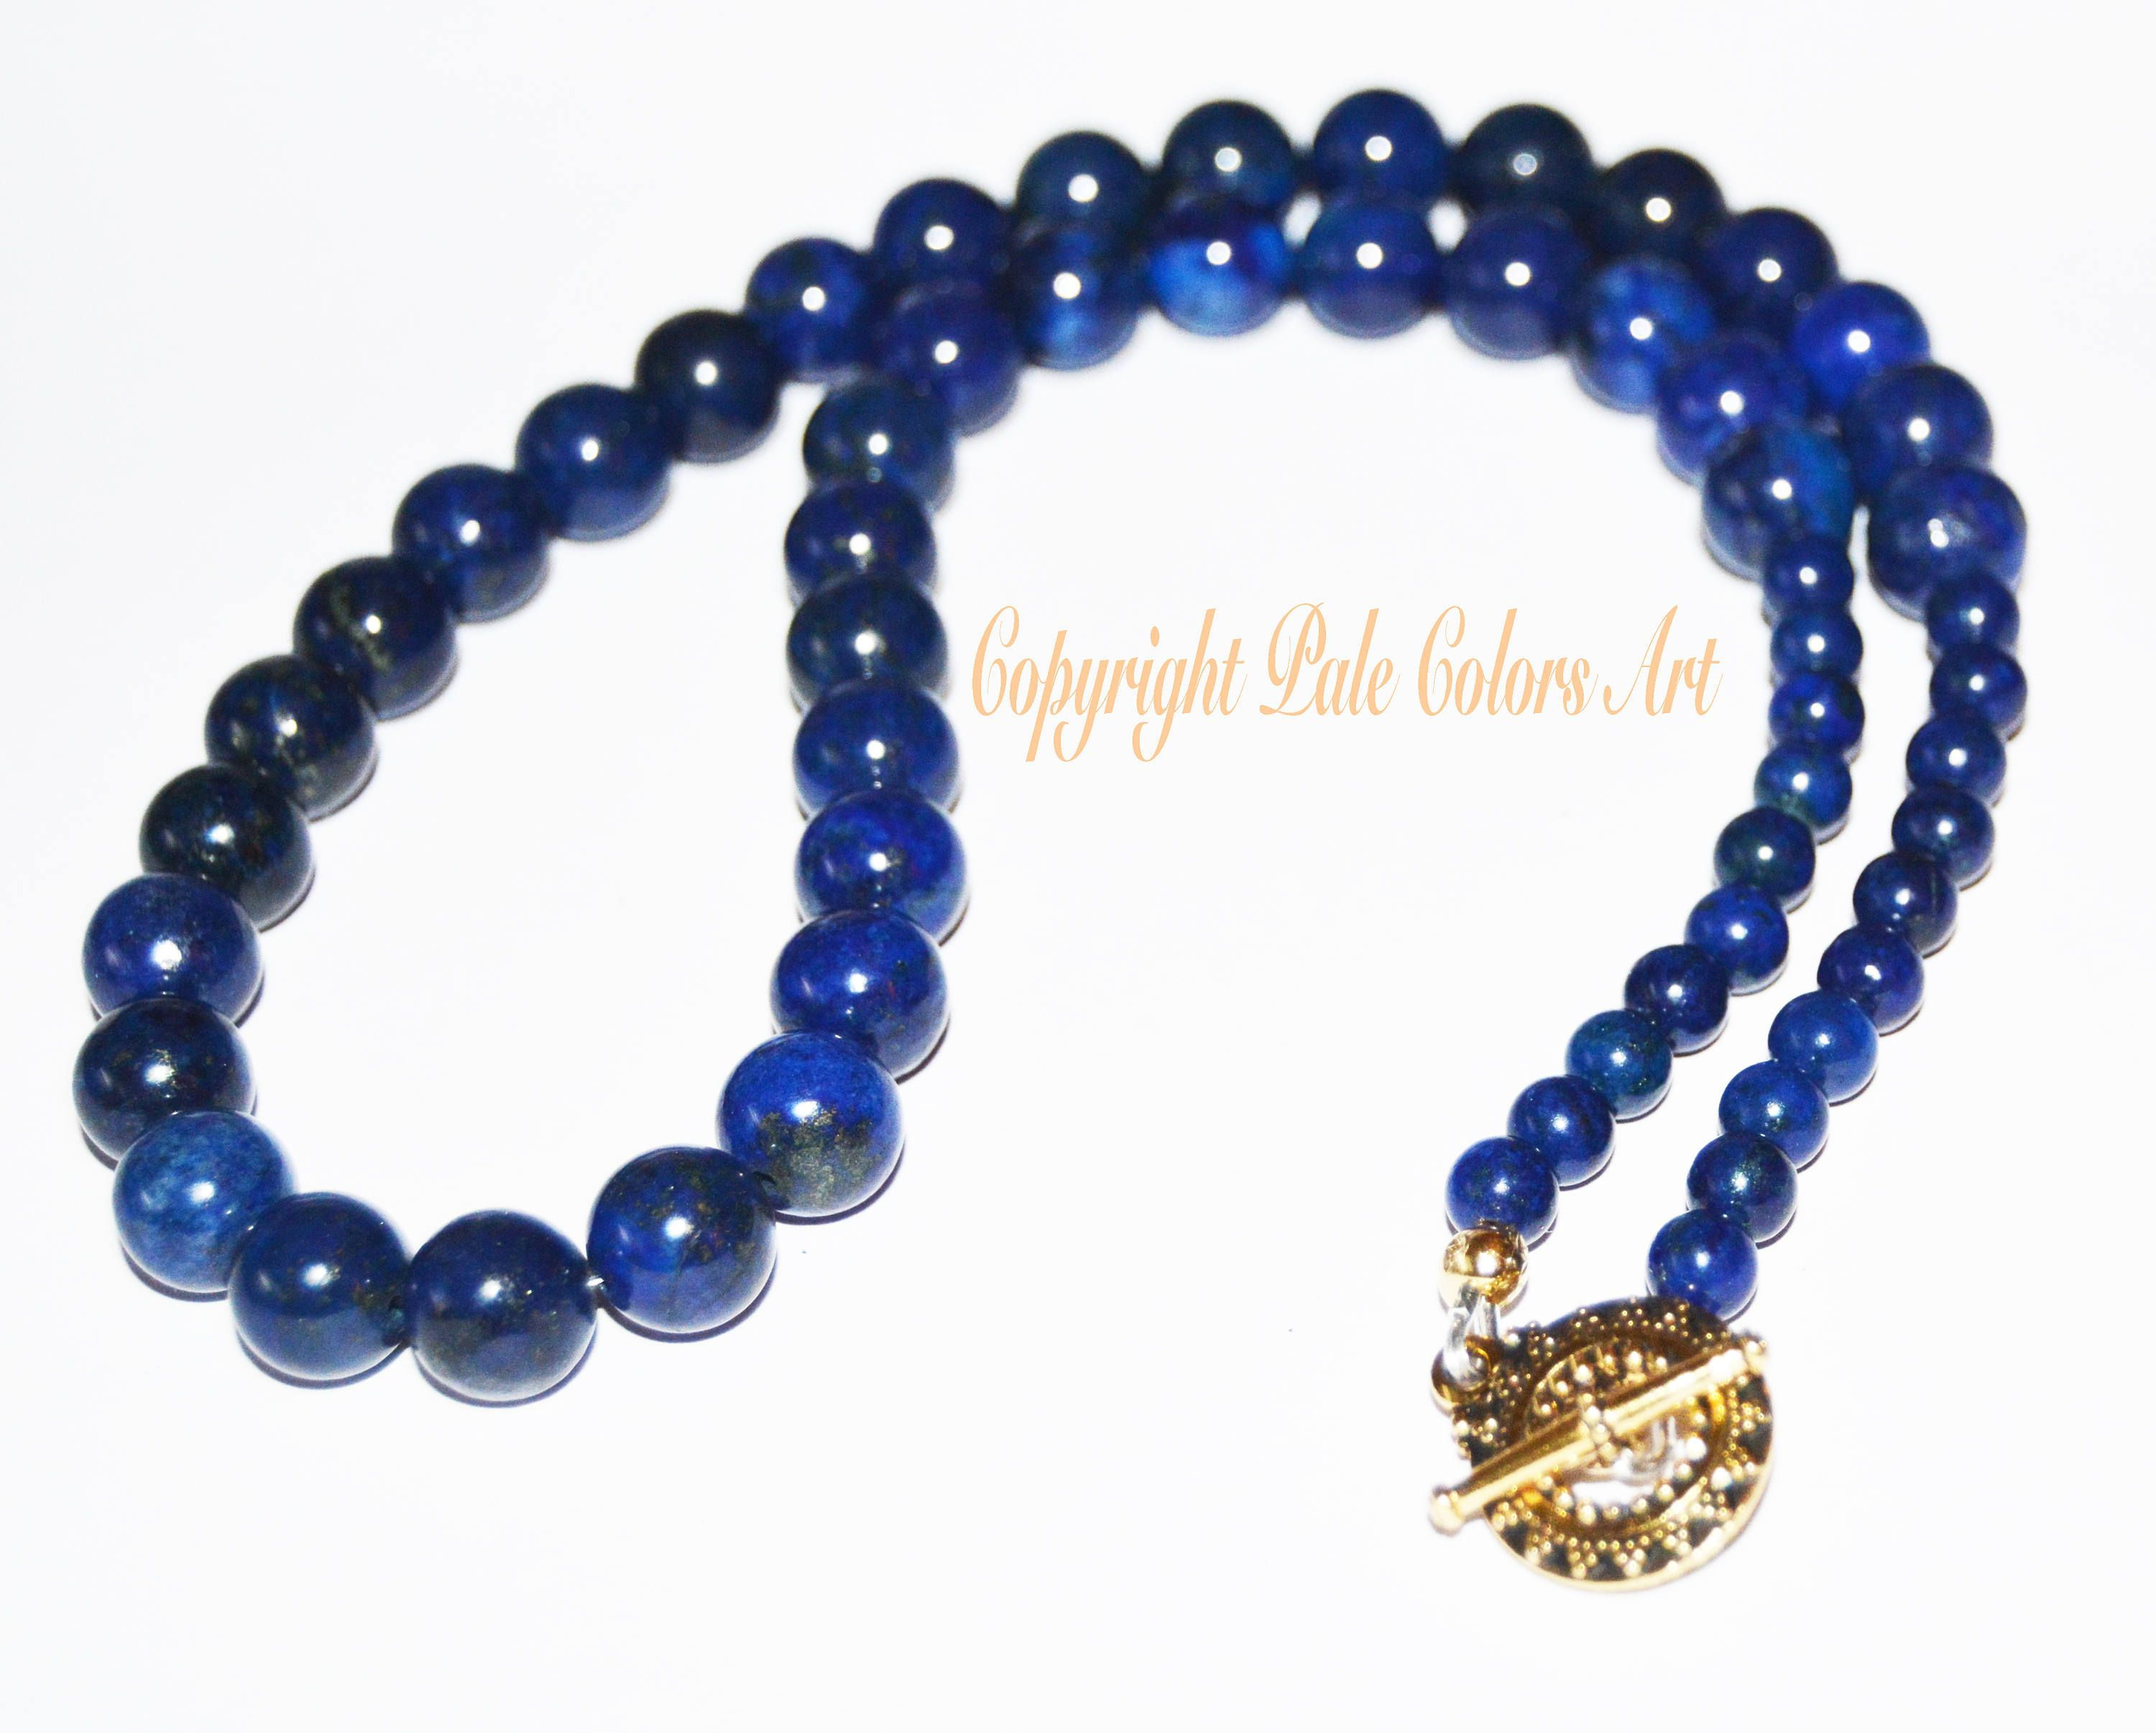 bead magnolia rosary benedict blue dark products small blvd necklace st